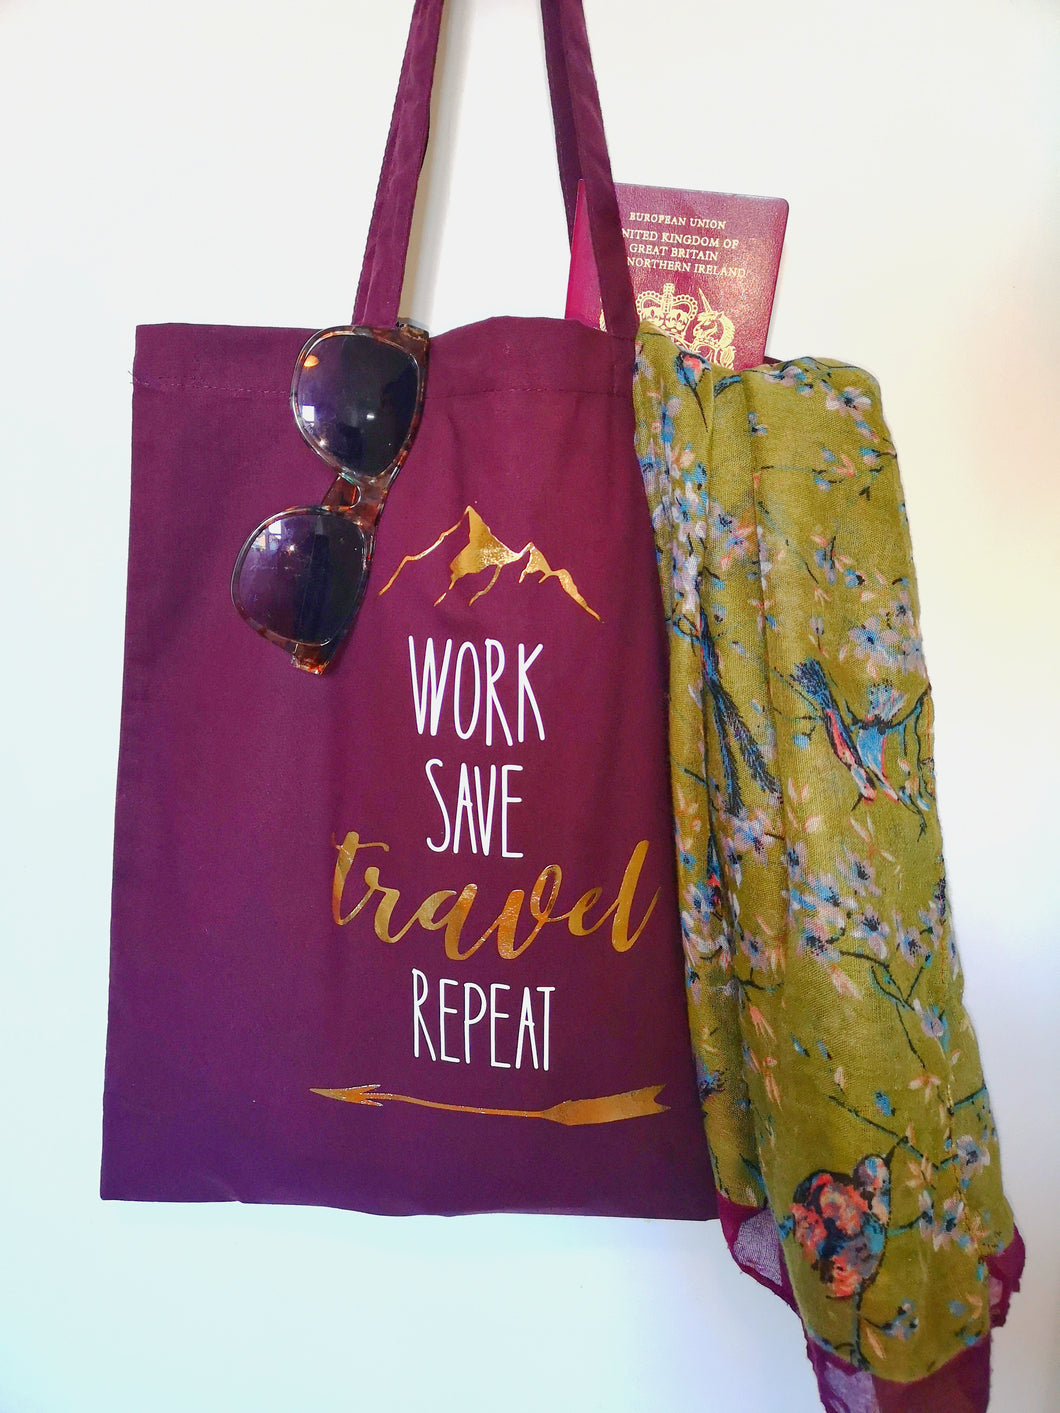 'Work, save, travel, repeat' Tote Bag